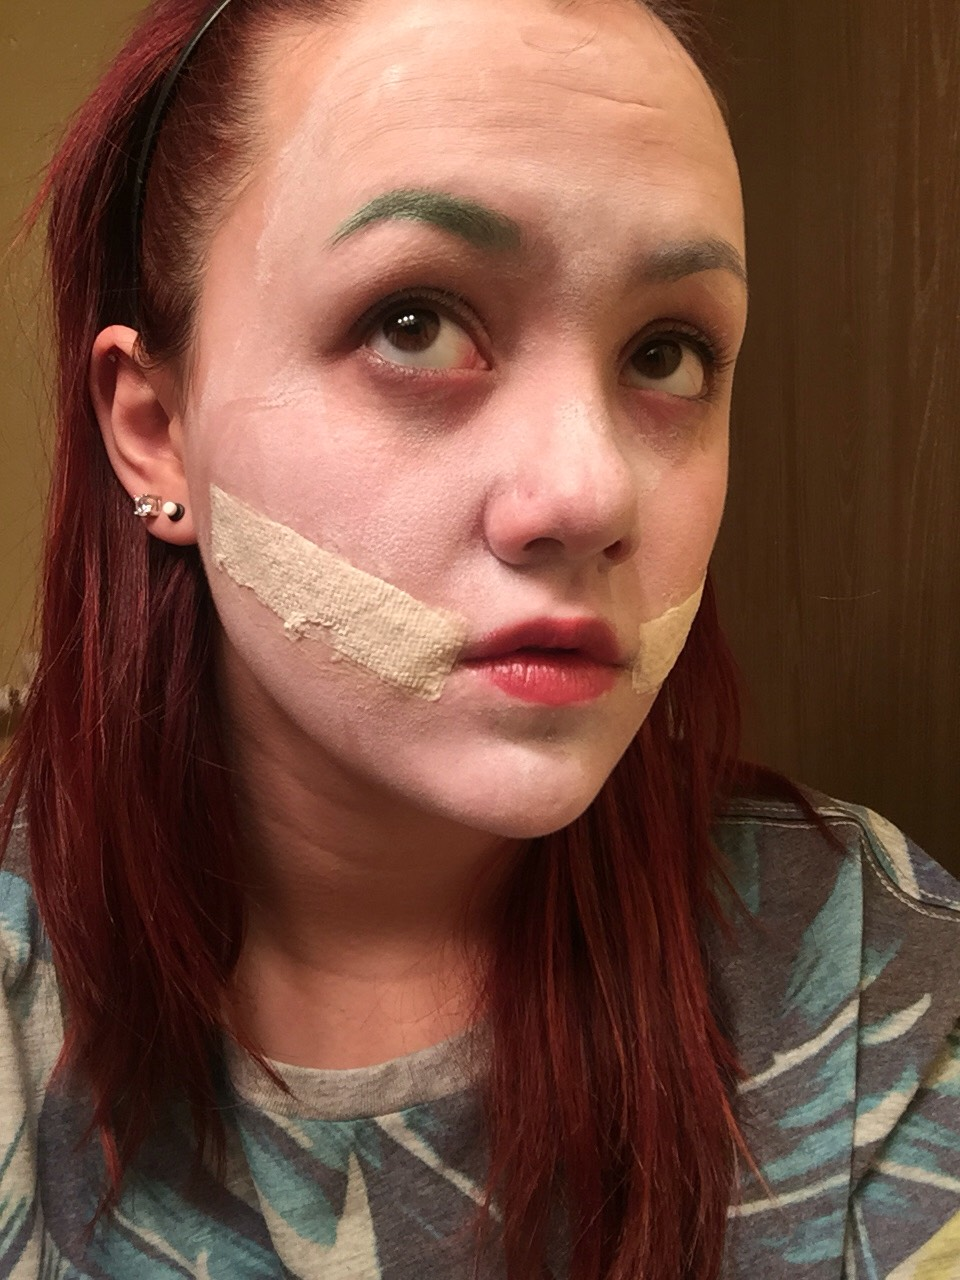 Green eye shadow for eyebrows and liquid latex for the scars